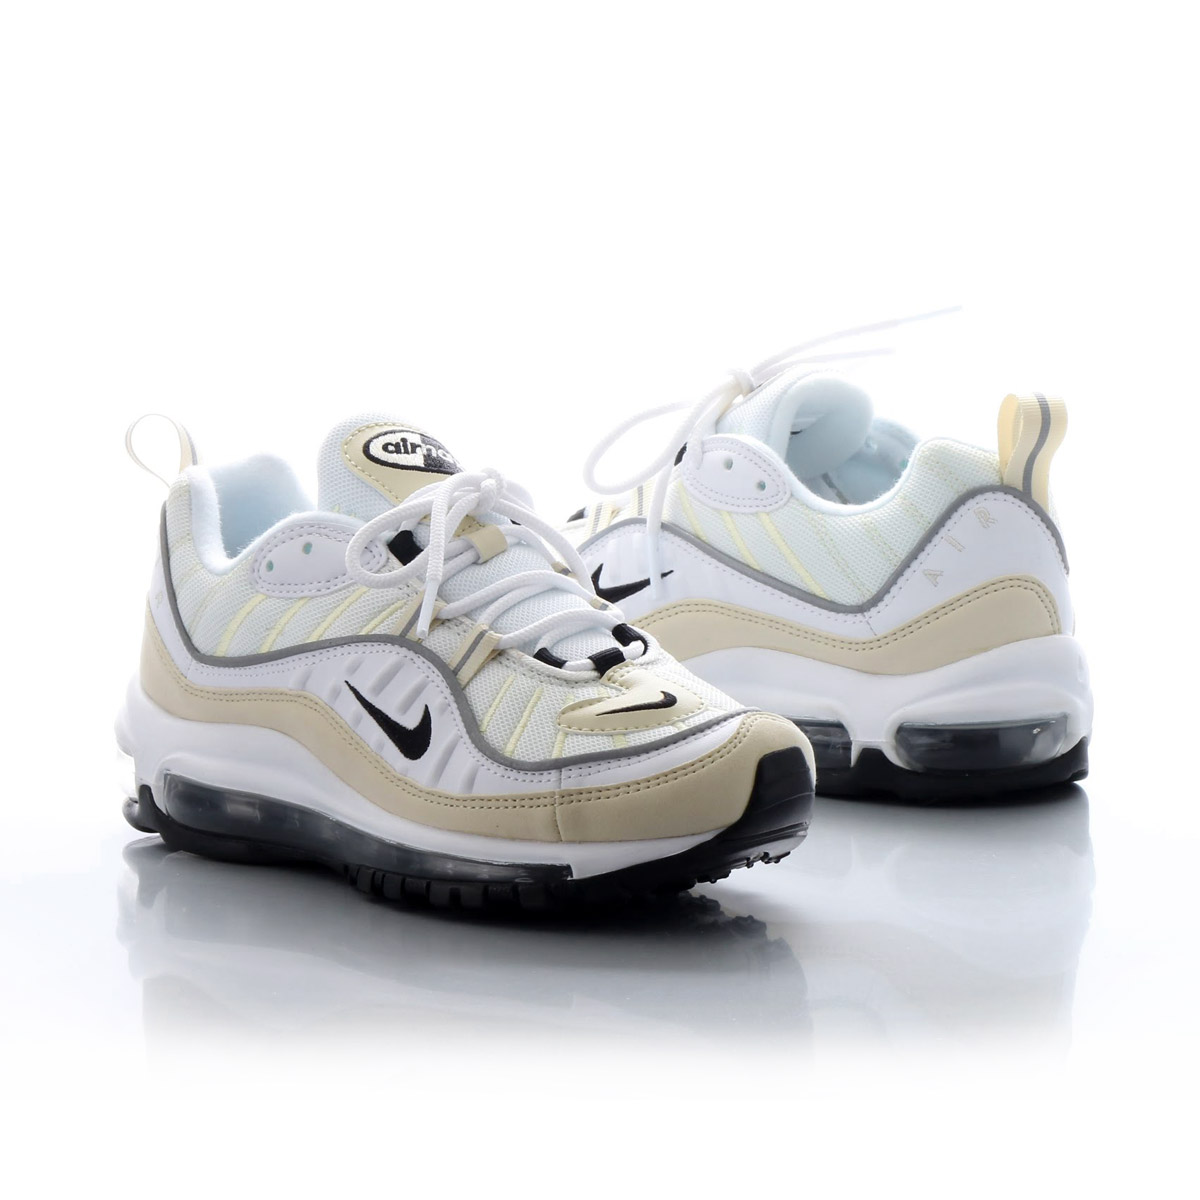 394cd3d6f2 atmos pink  NIKE W AIR MAX 98 (Nike women Air Max 98) (WHITE BLACK ...